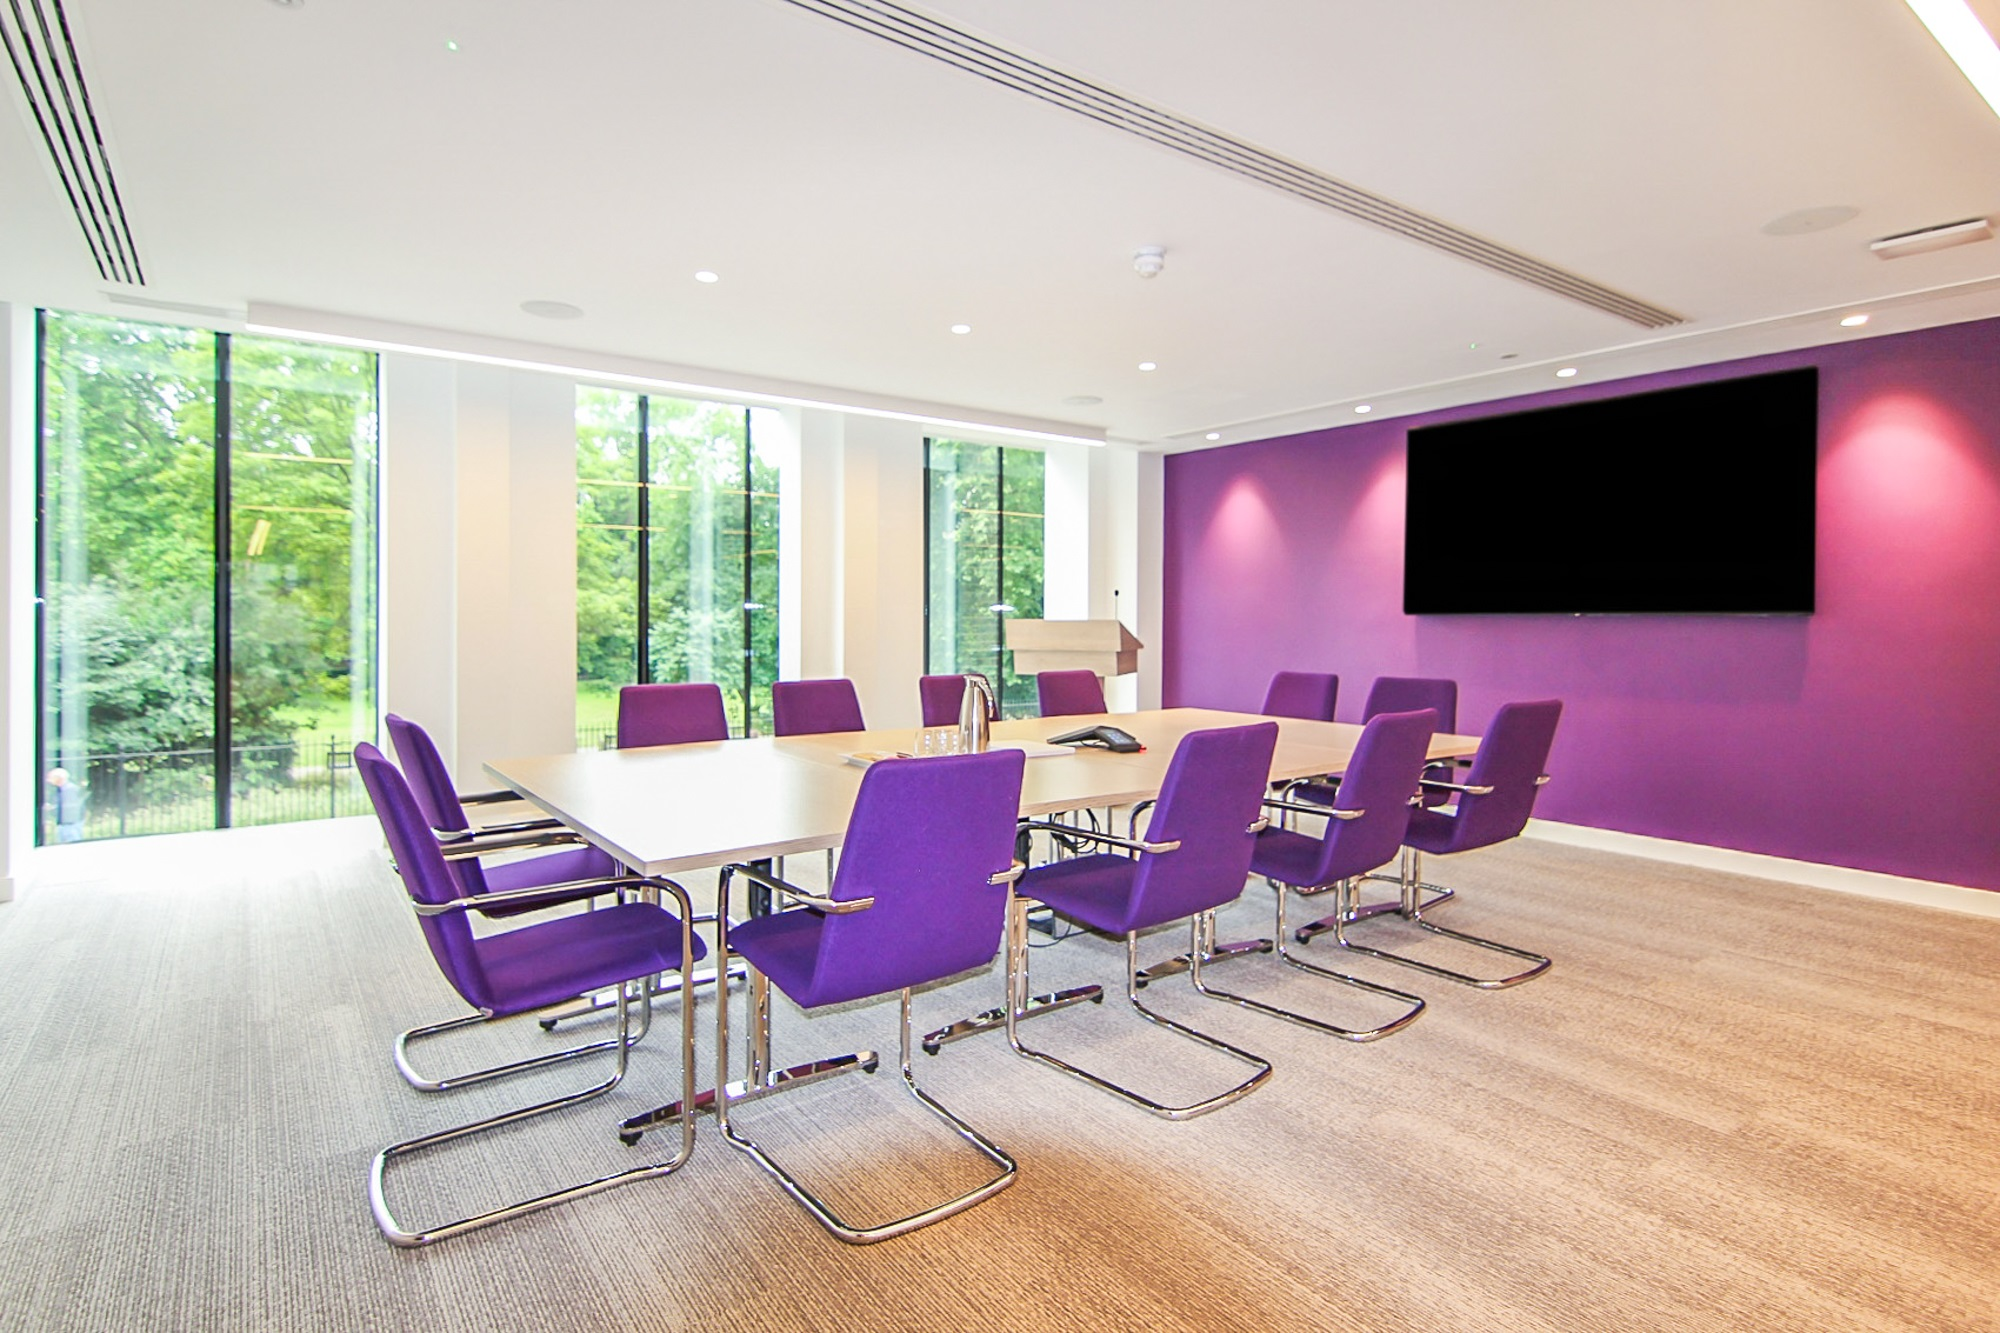 office board room with purple chairs and wall